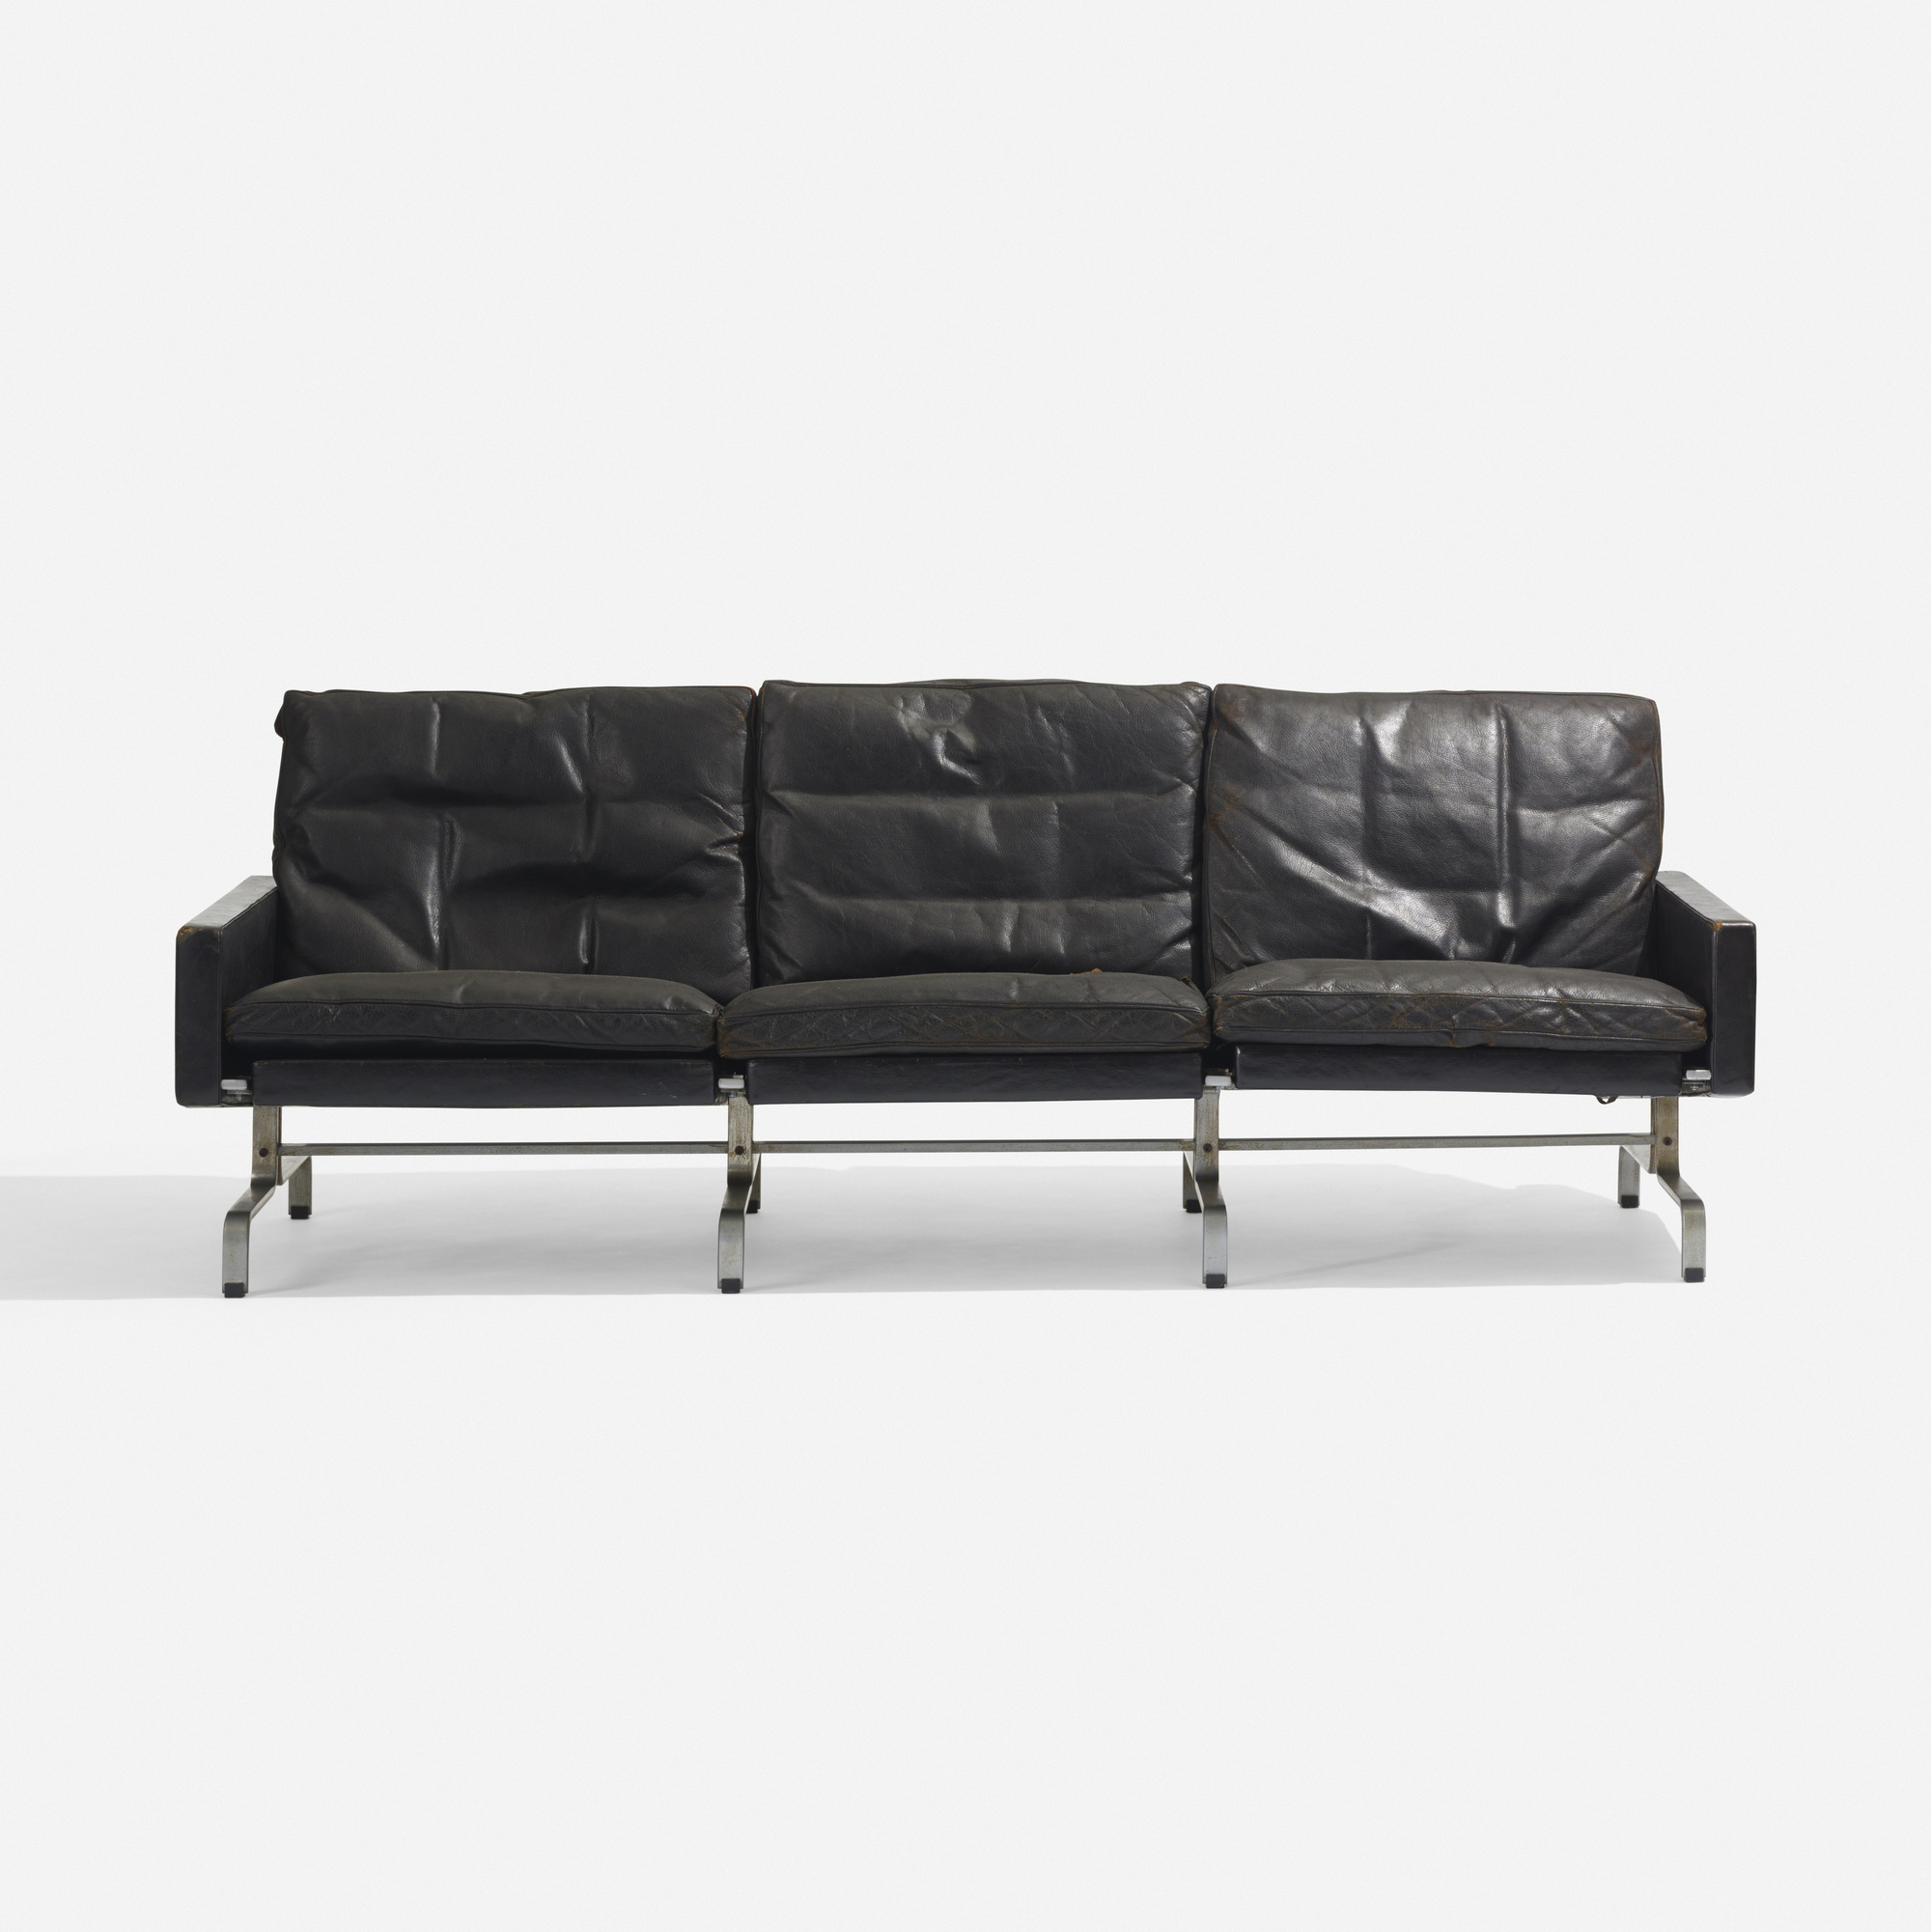 160 Poul Kjaerholm PK 31 3 sofa Scandinavian Design 18 May